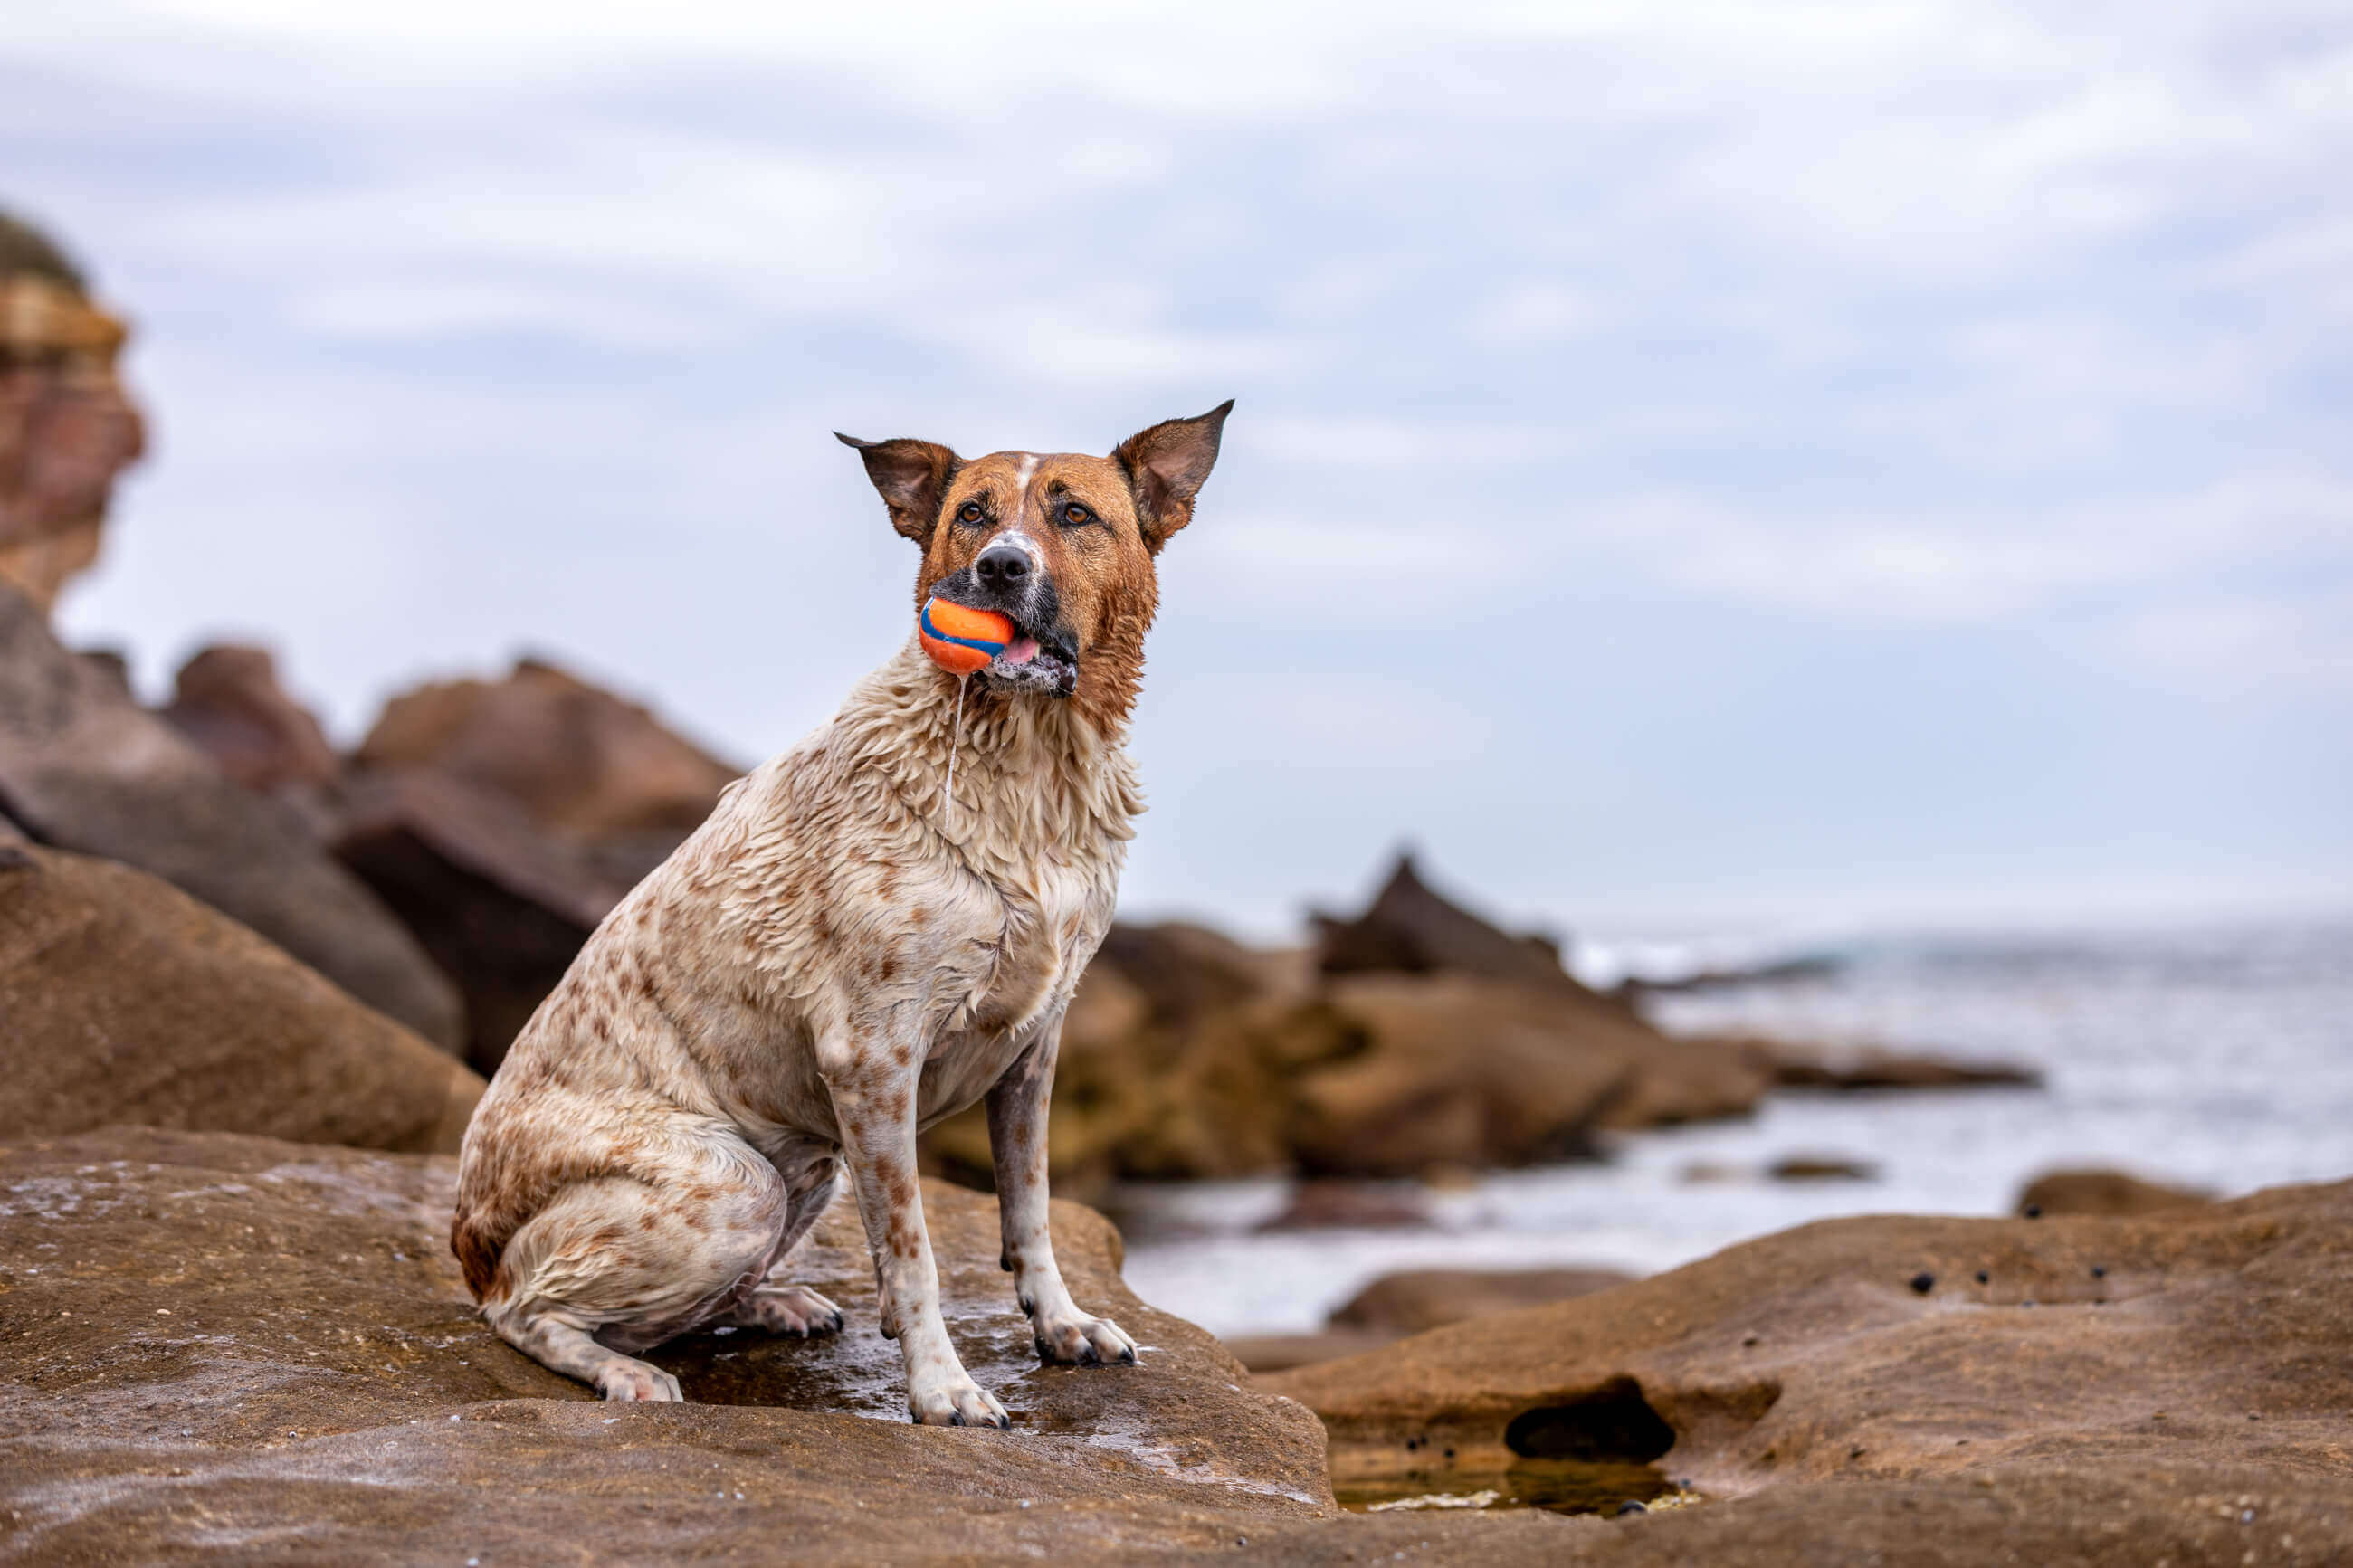 Tilly the Cattle Dog on rocks at beach with orange ball in her mouth